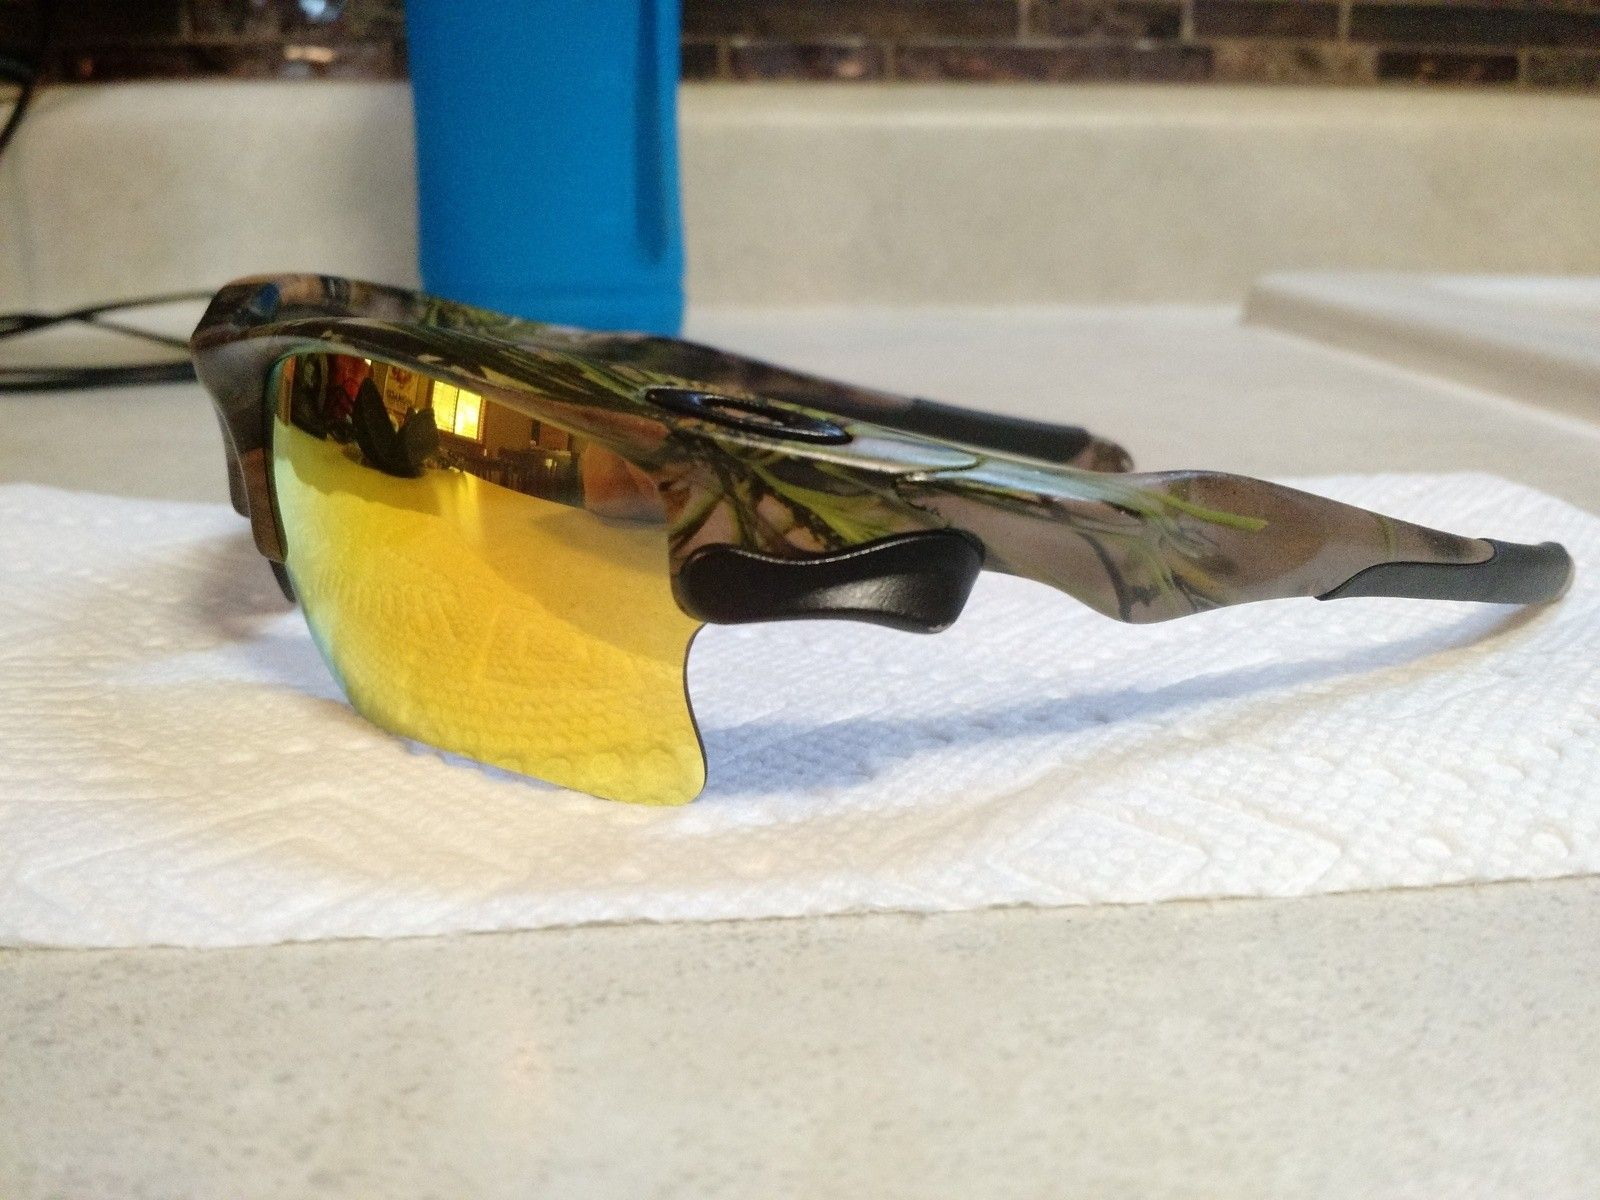 Fast Jacket Camo: Fire or Jade lenses? - IMG_20150905_151624216.jpg